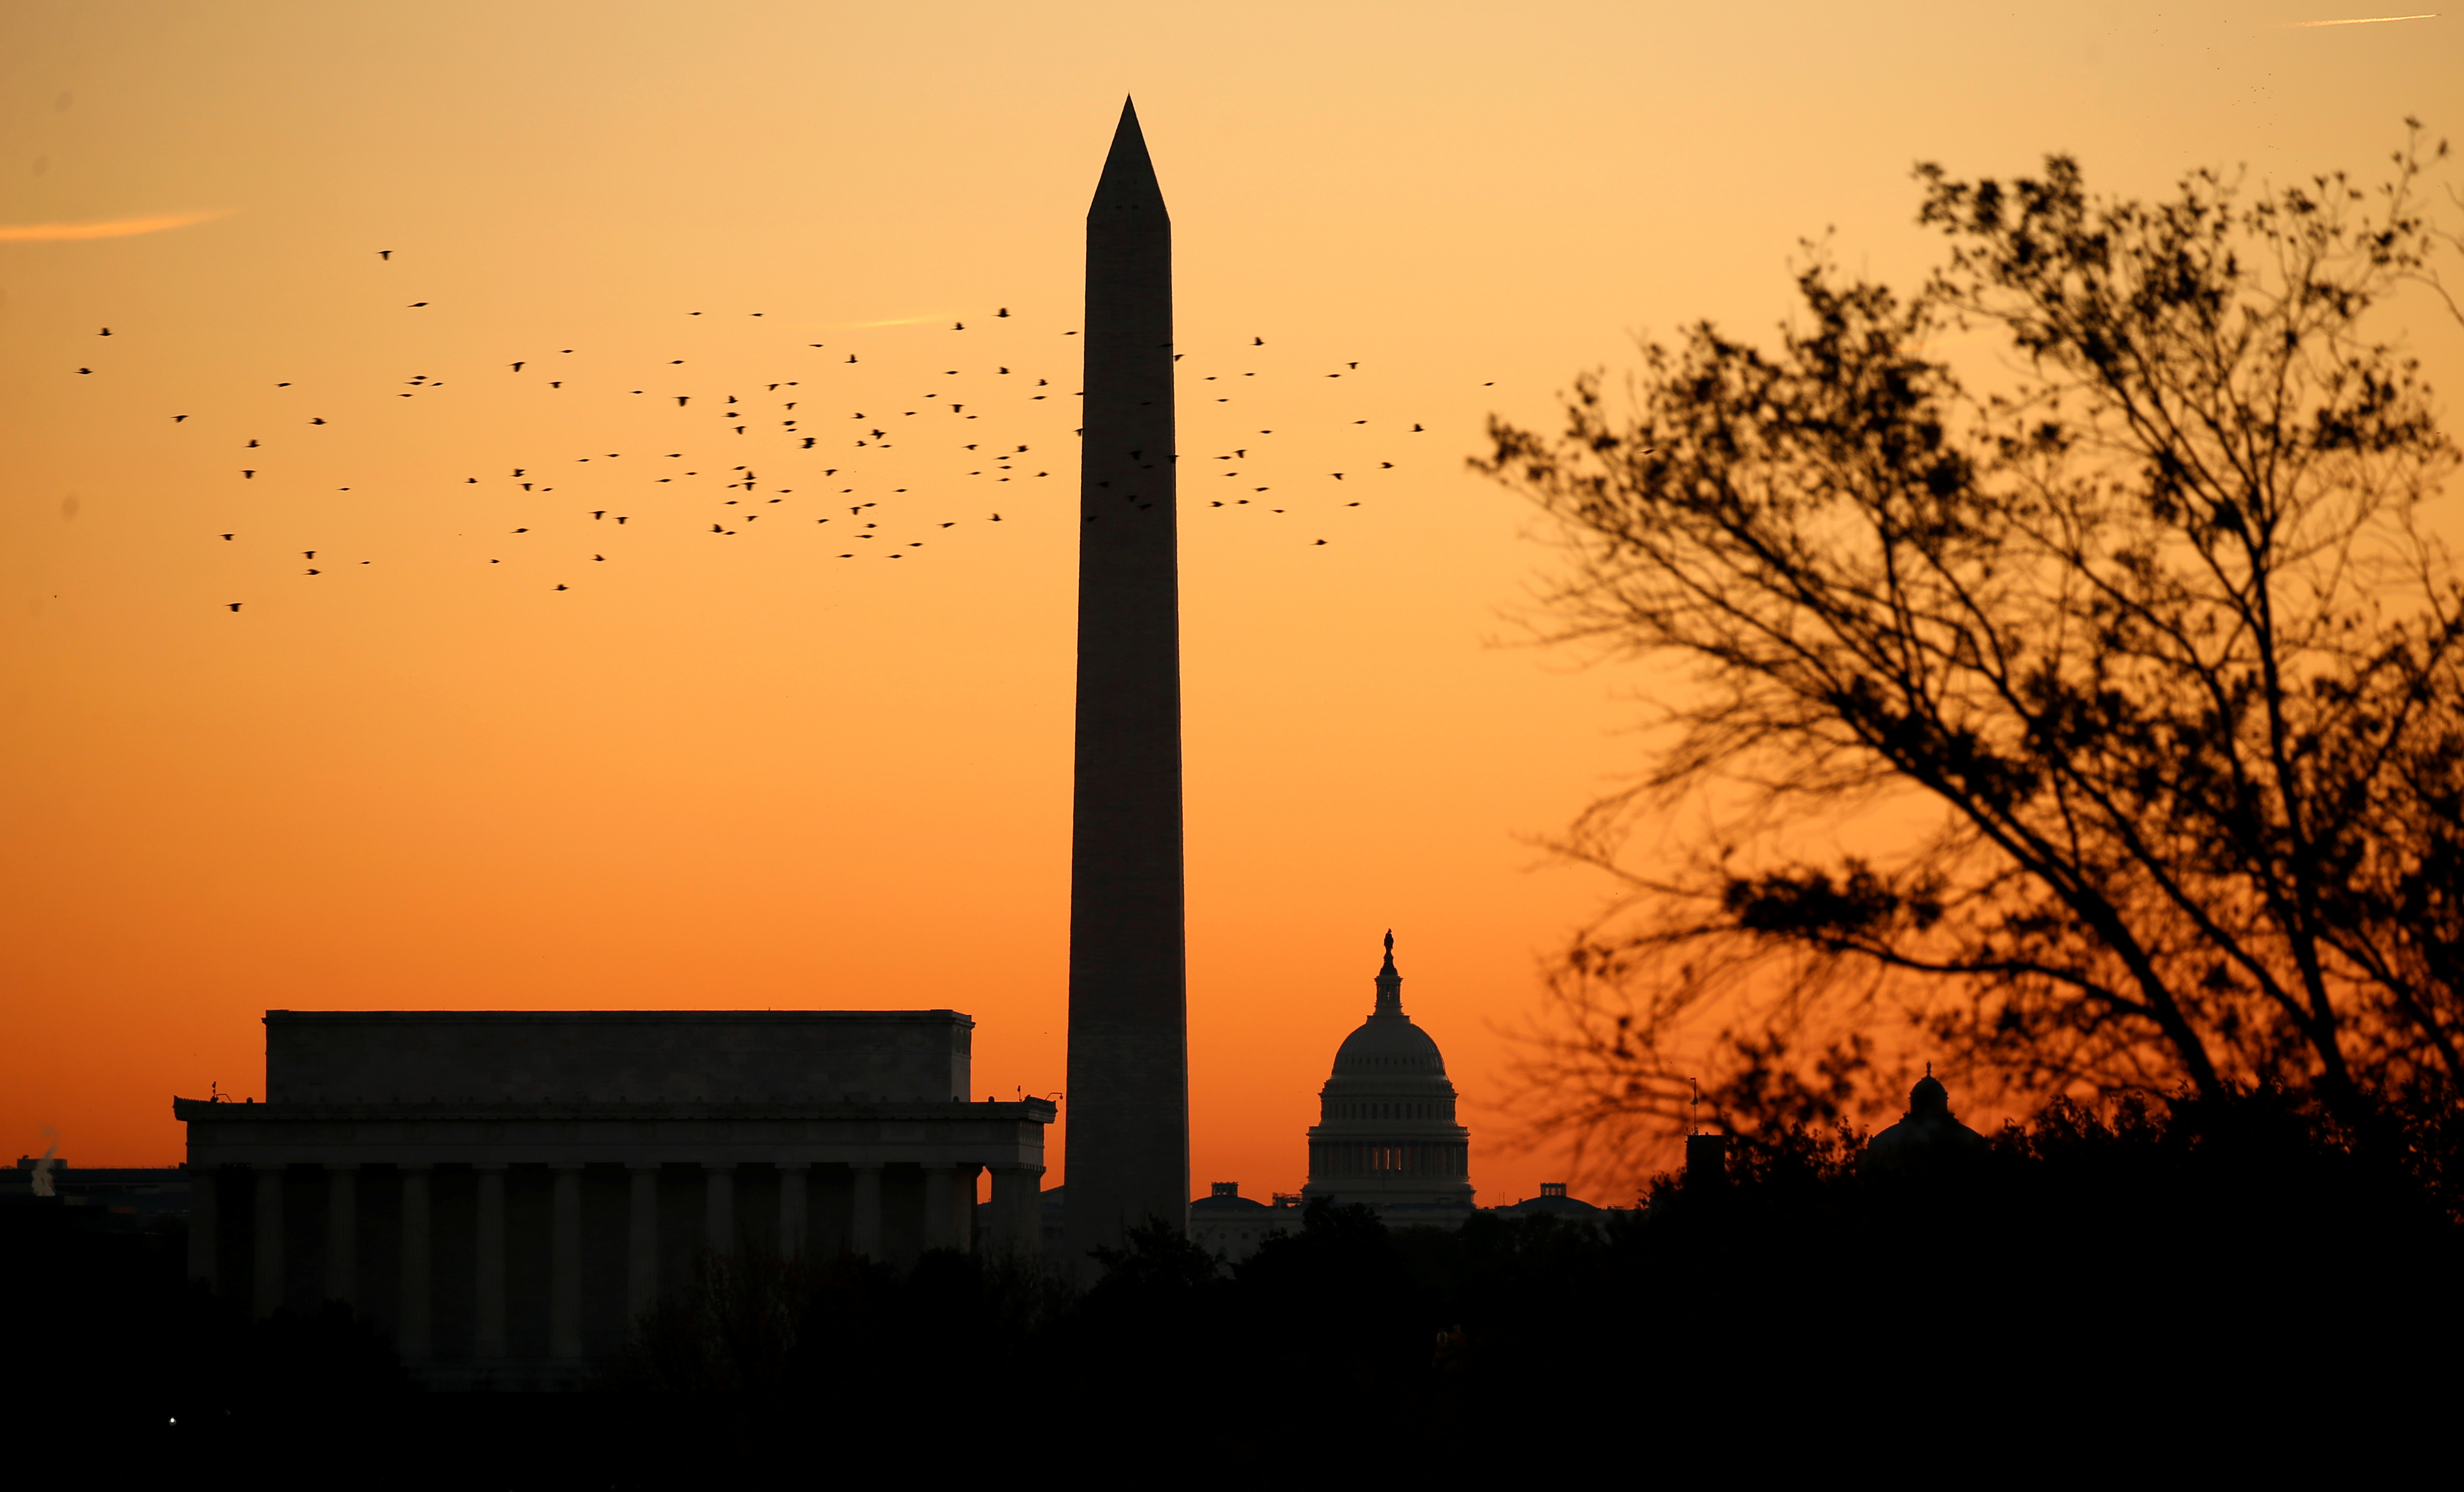 Birds are silhouetted as they fly over the Lincoln Memorial.